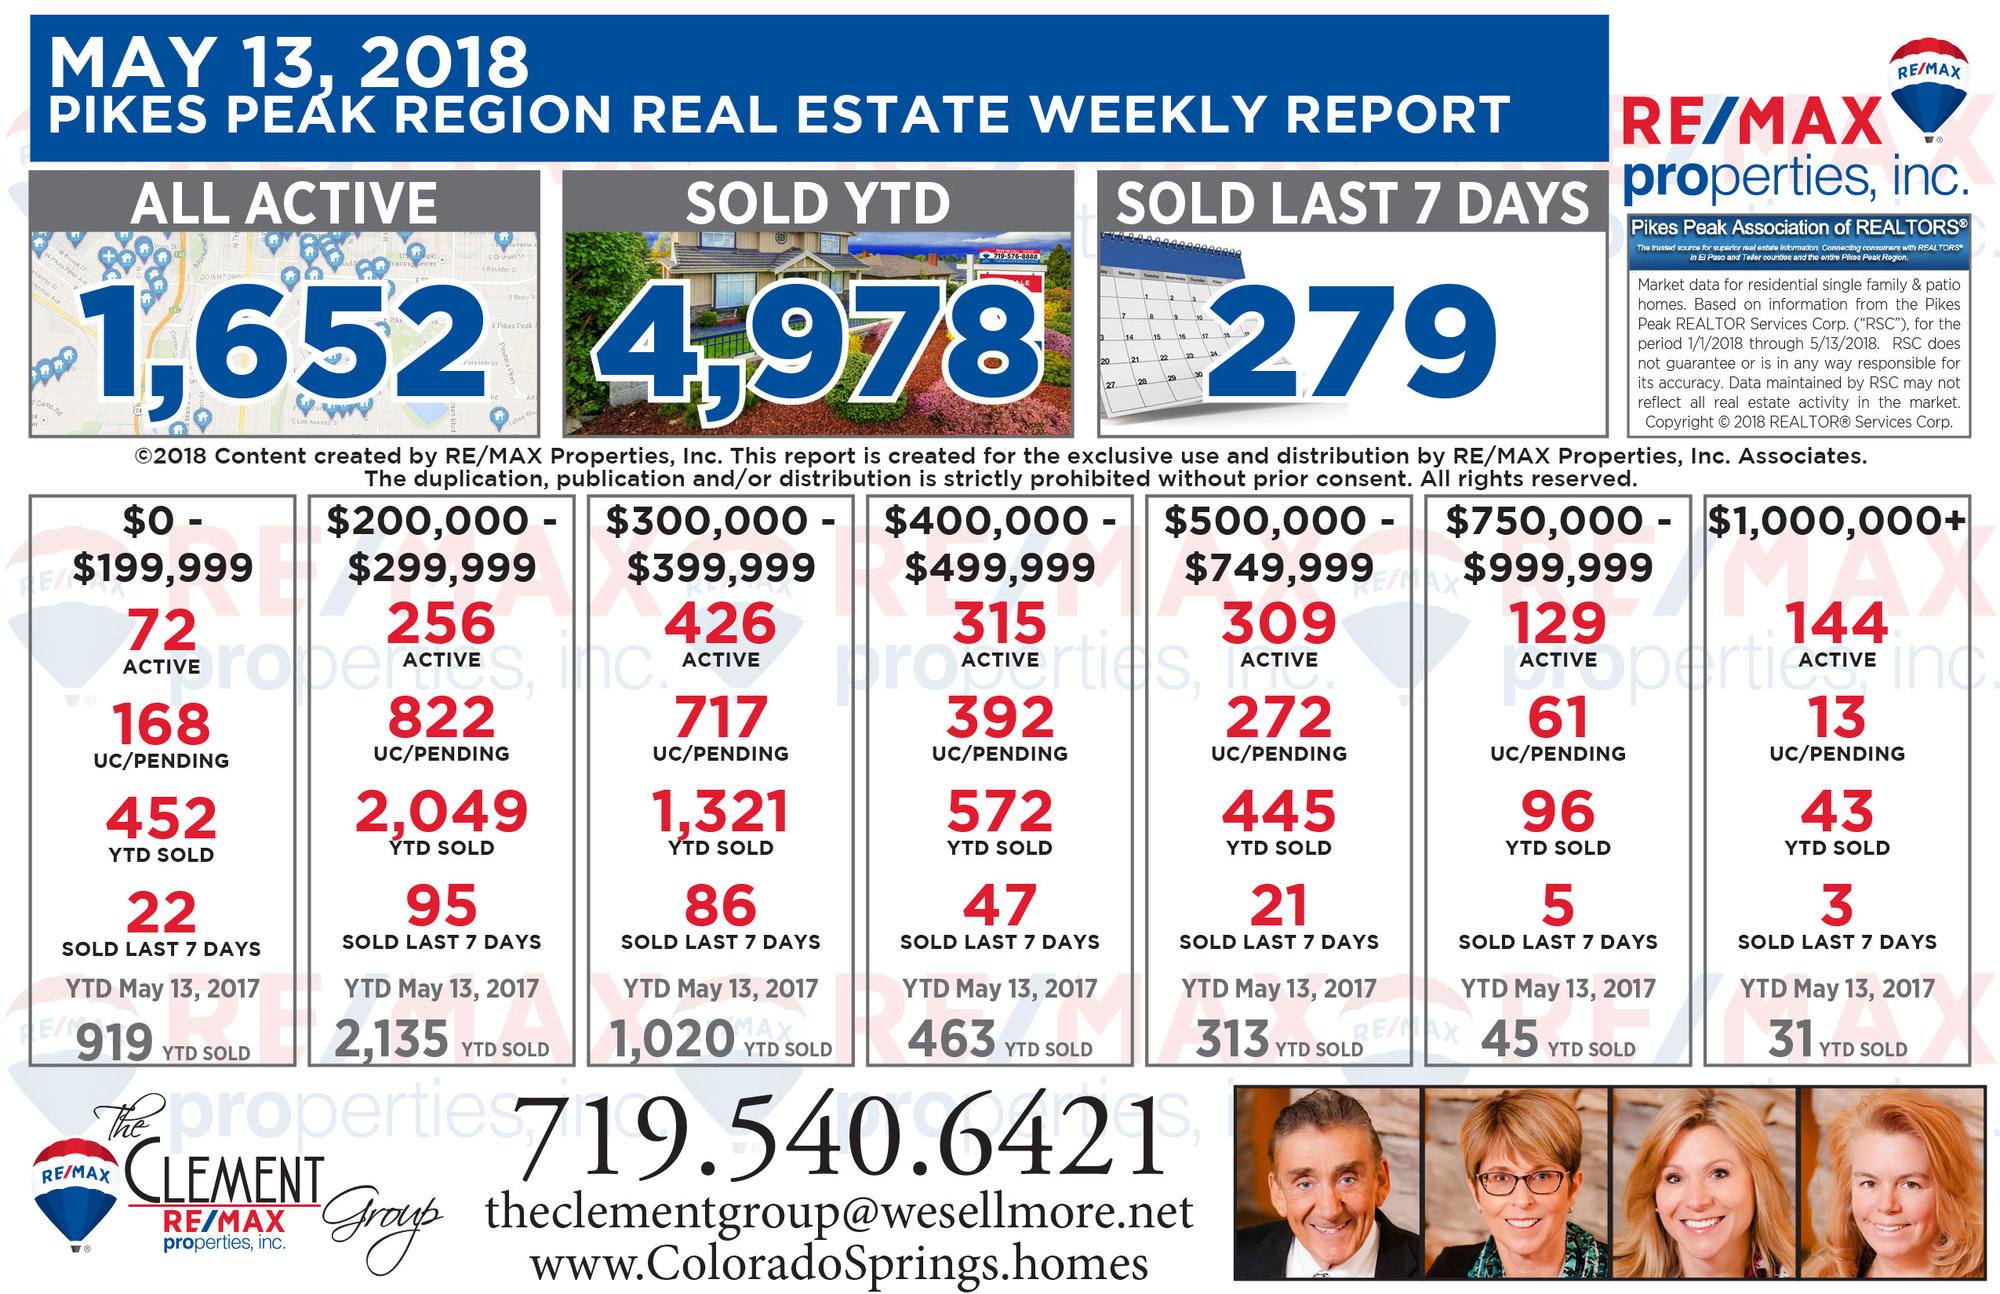 Colorado Springs Real Estate Market Weekly Update - May 13, 2018